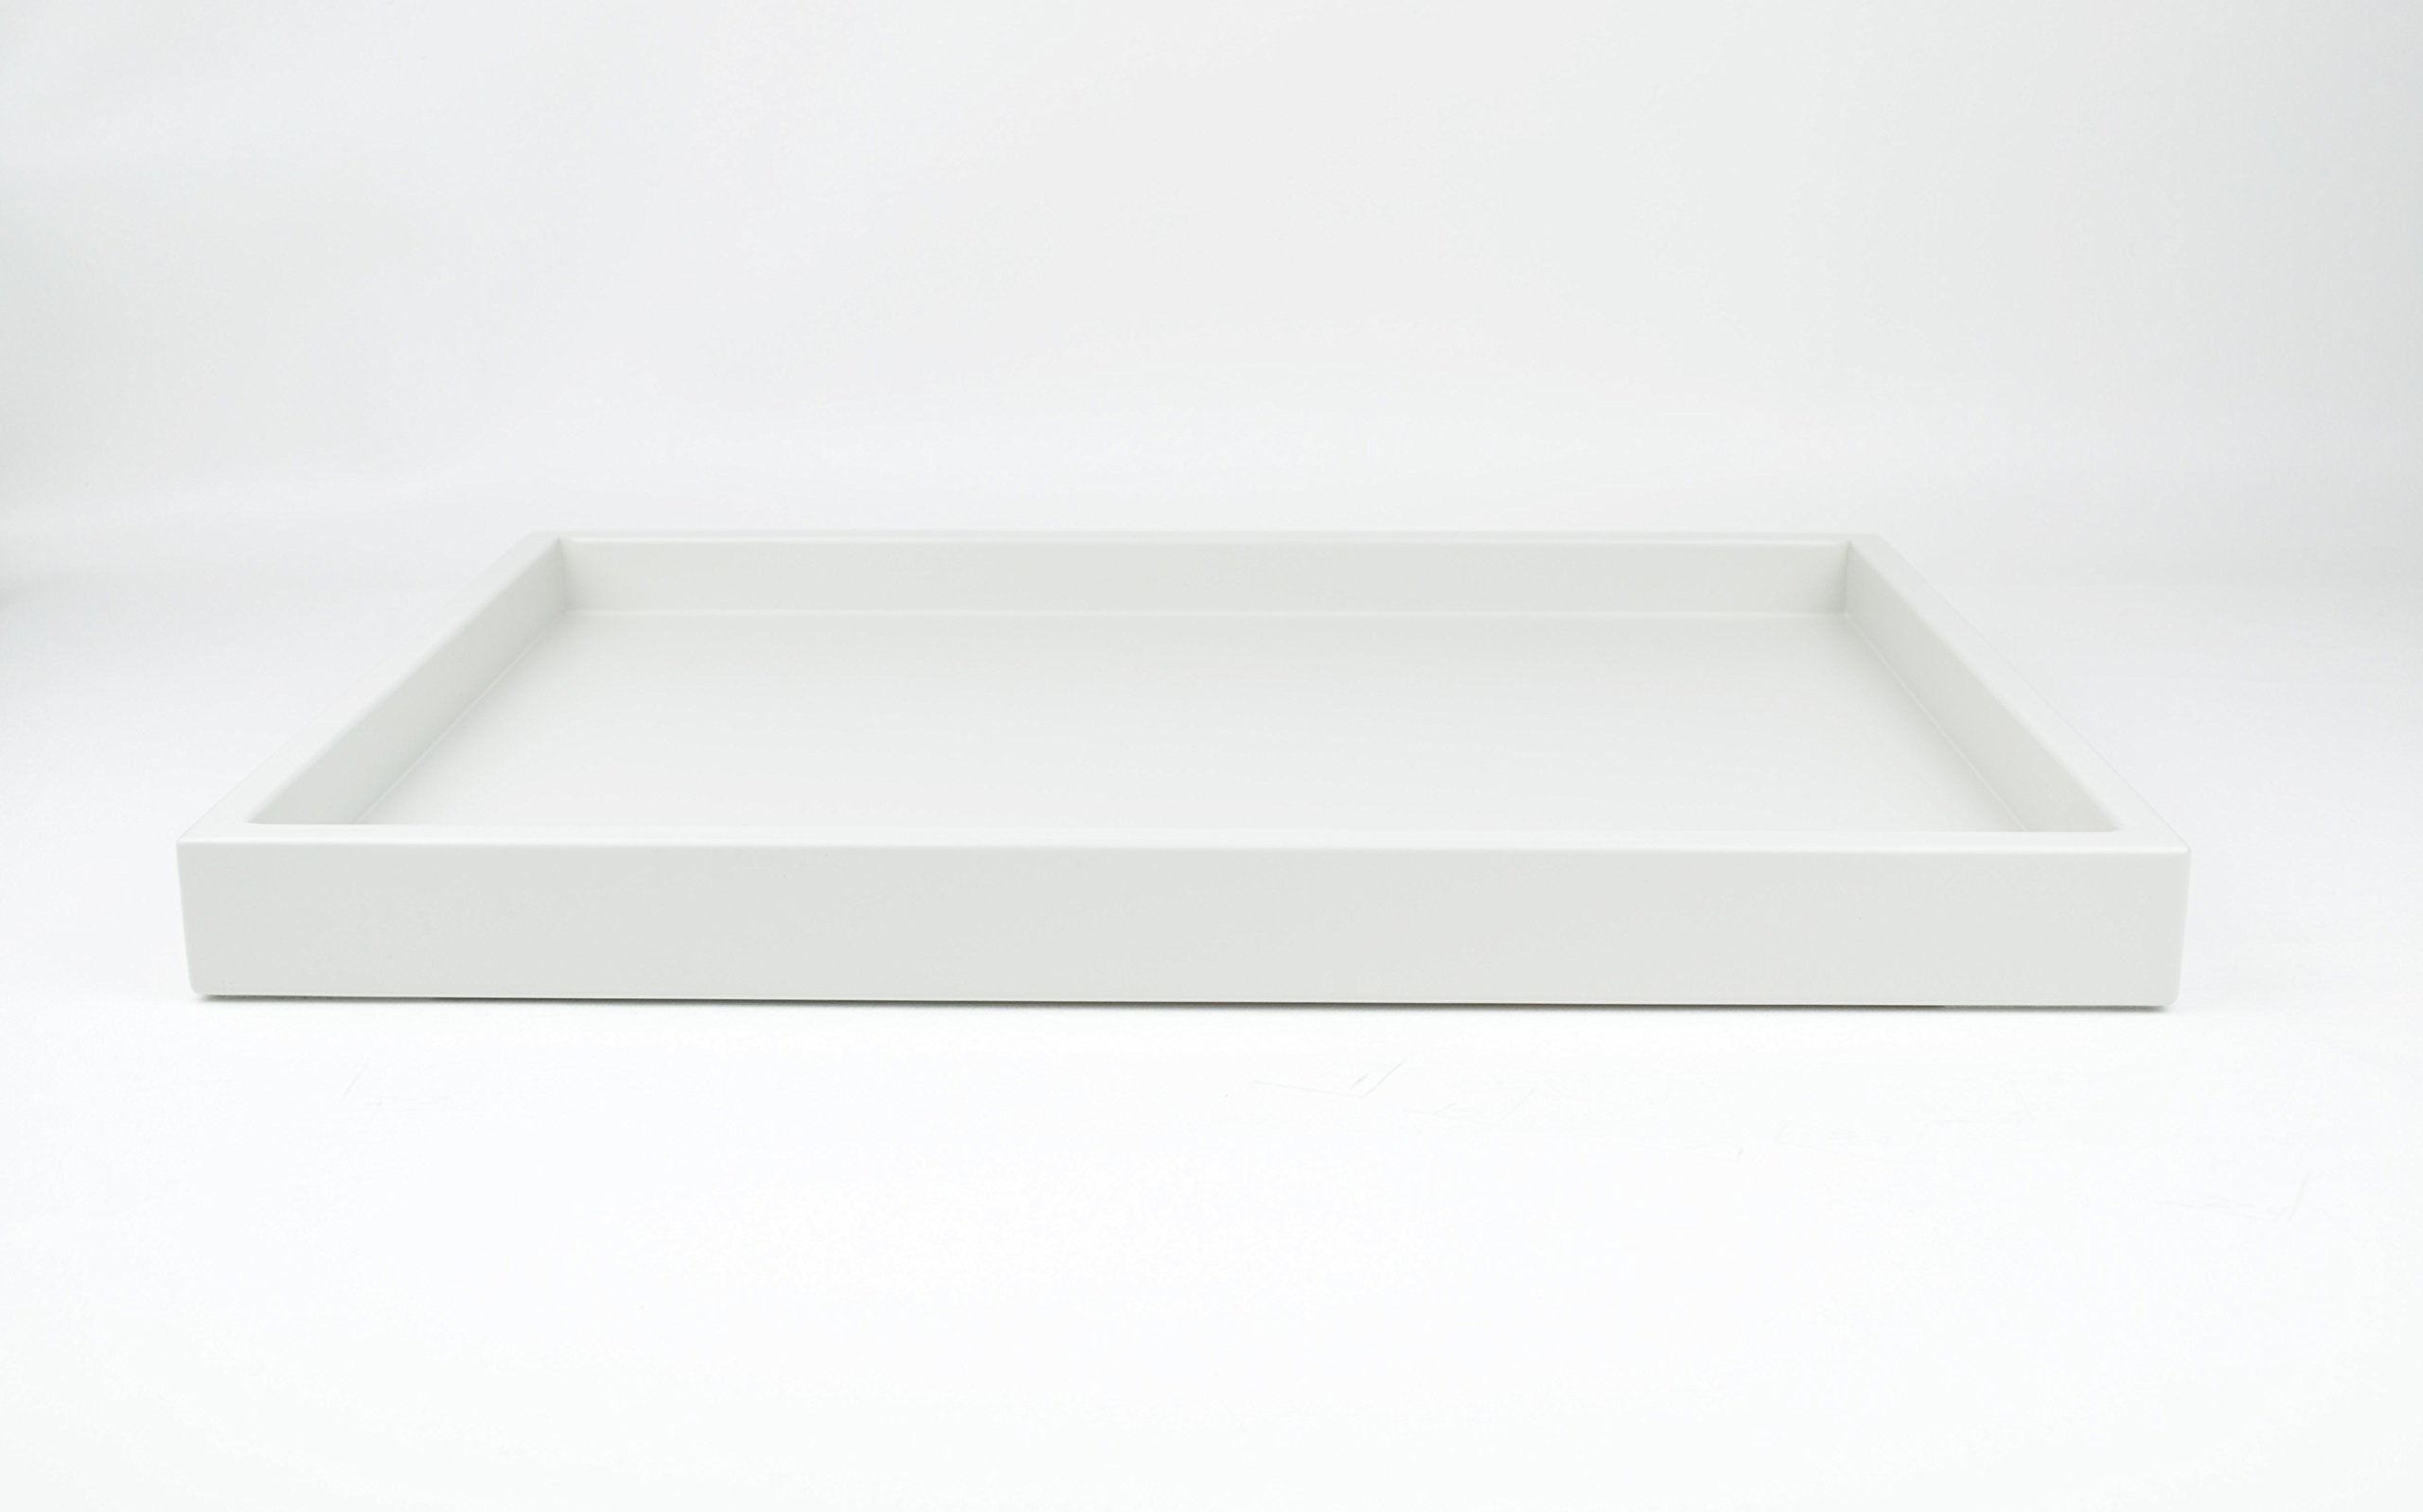 Matte White Tabletop Serving Tray, Hand Made in America by Gleaming Renditions